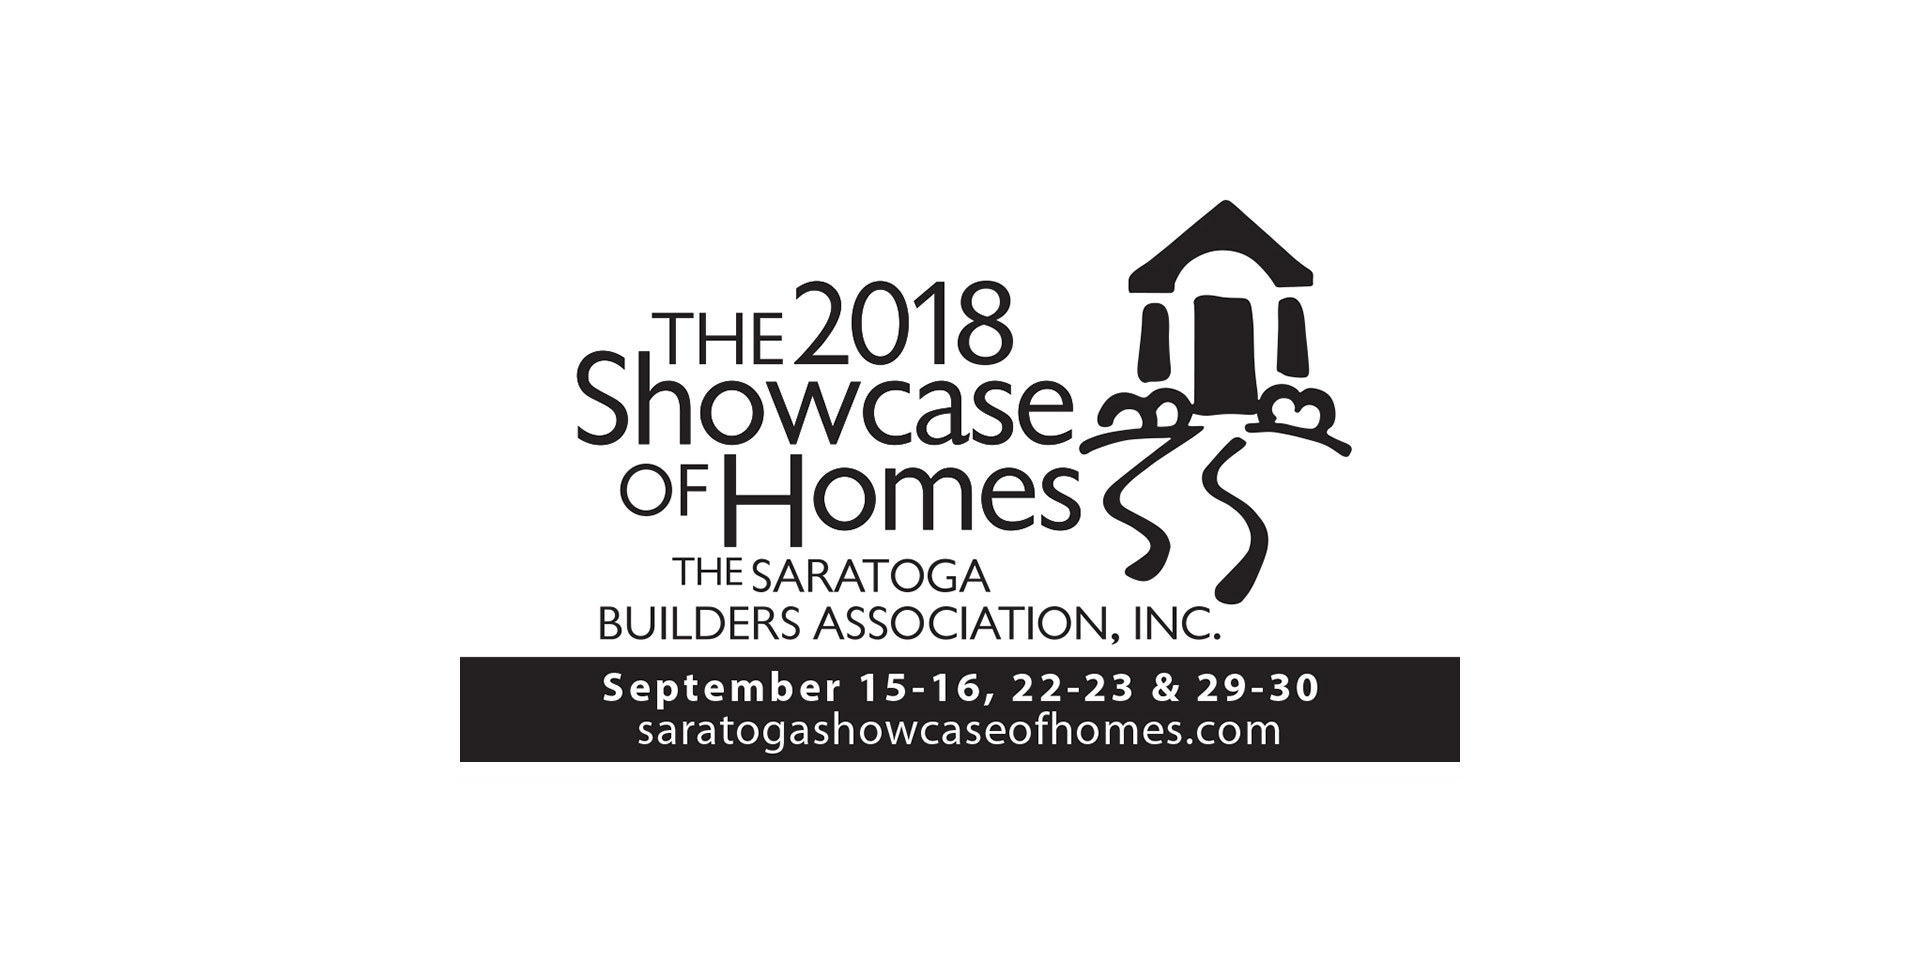 2018 Showcase of Homes dates logo